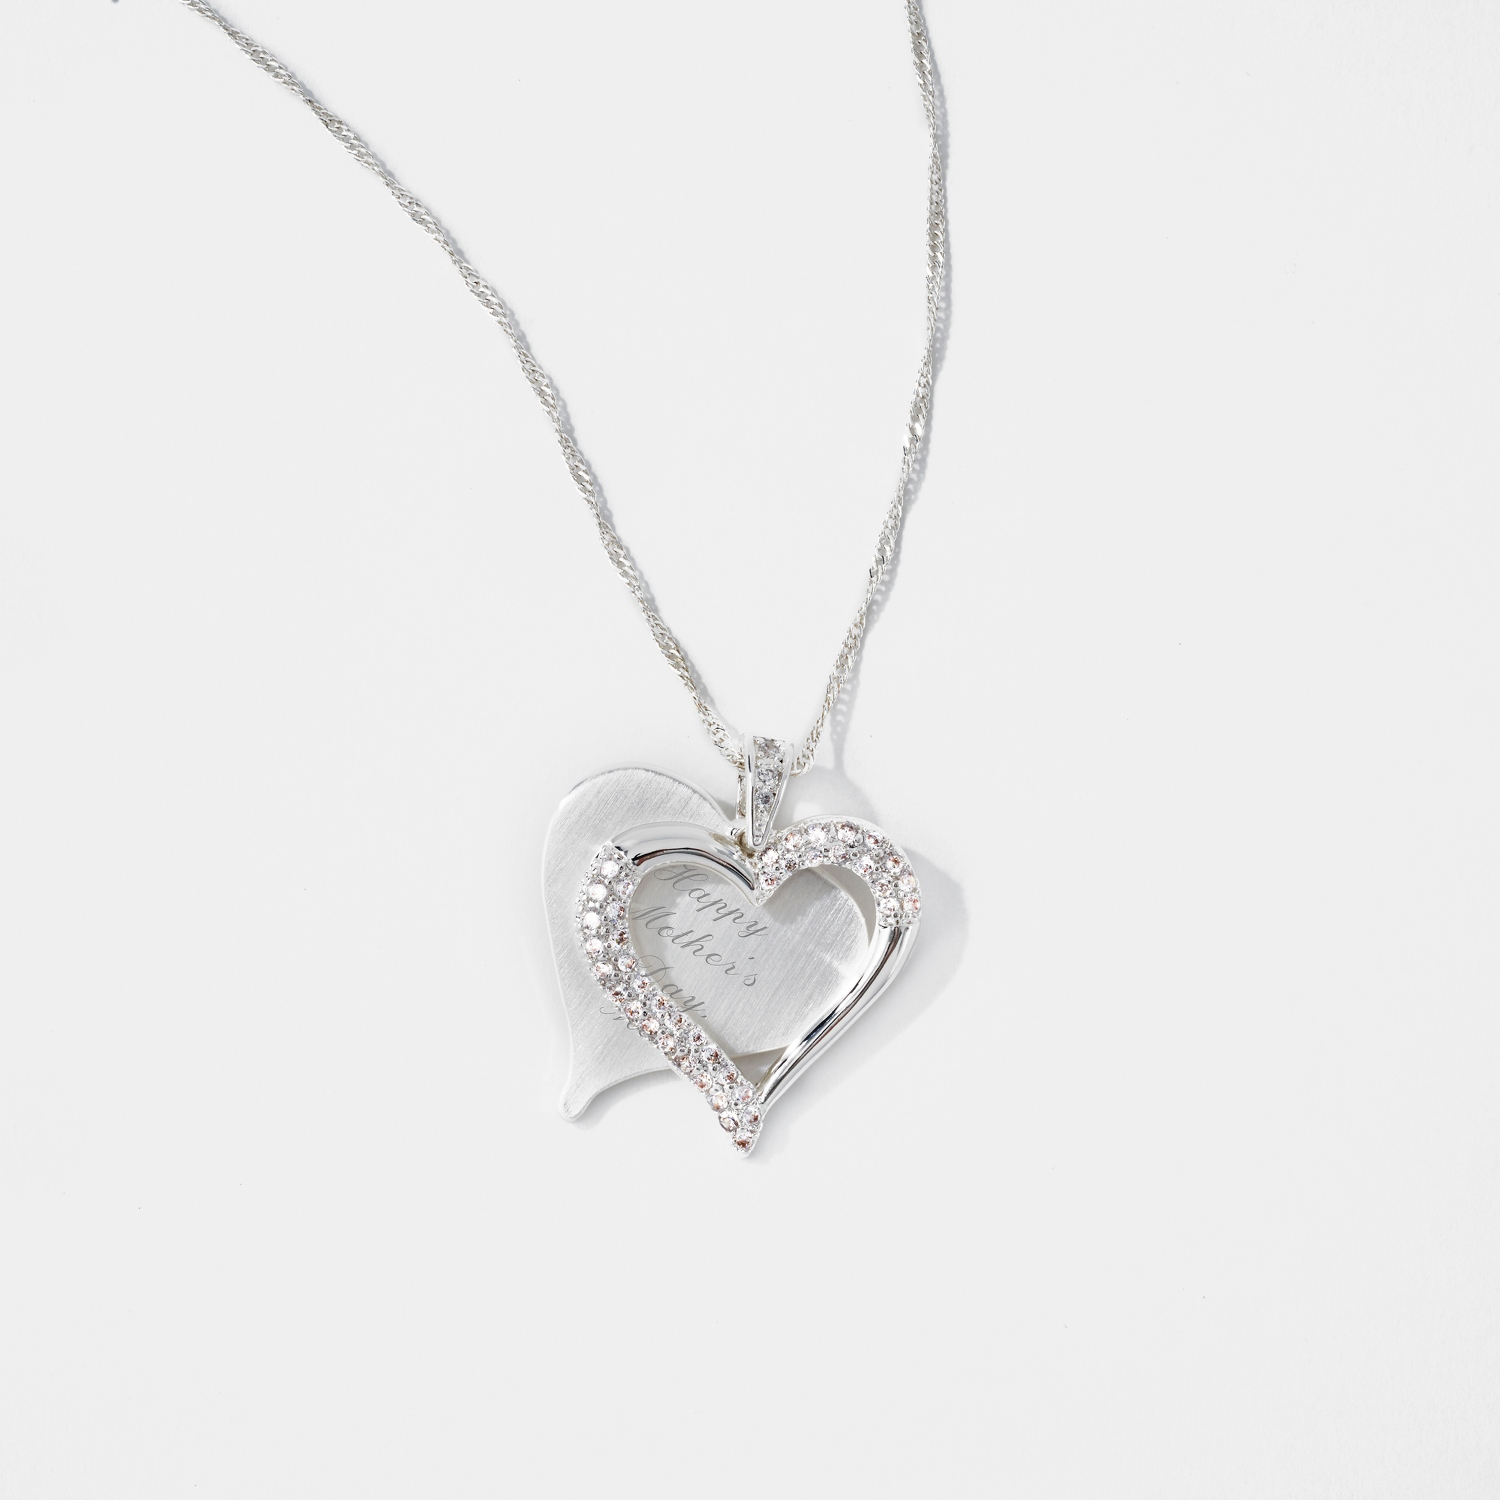 pav products reyter necklace adina pave heart folded